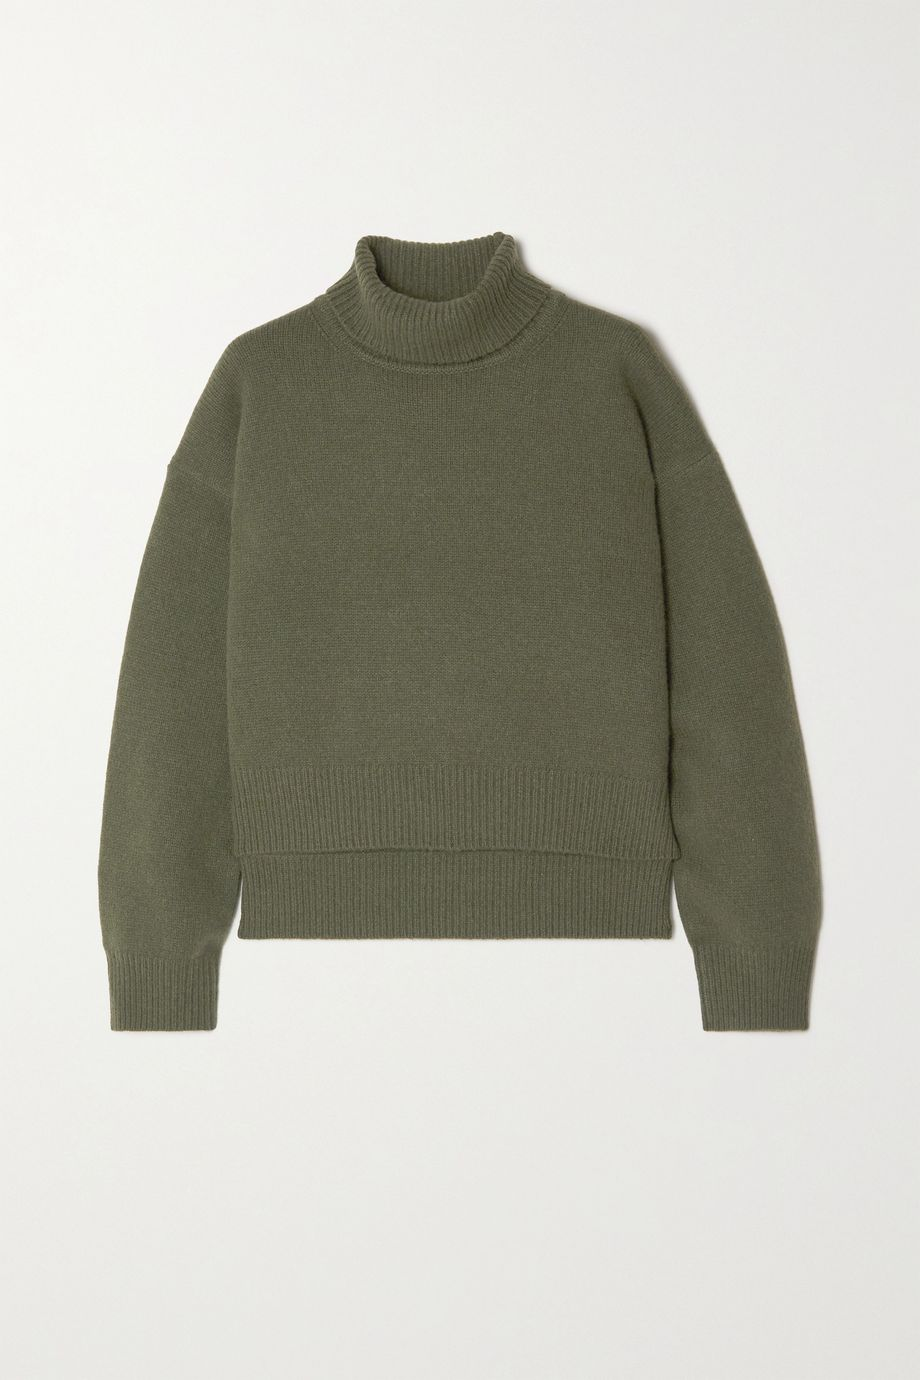 REJINA PYO + NET SUSTAIN Lyn asymmetric cashmere turtleneck sweater